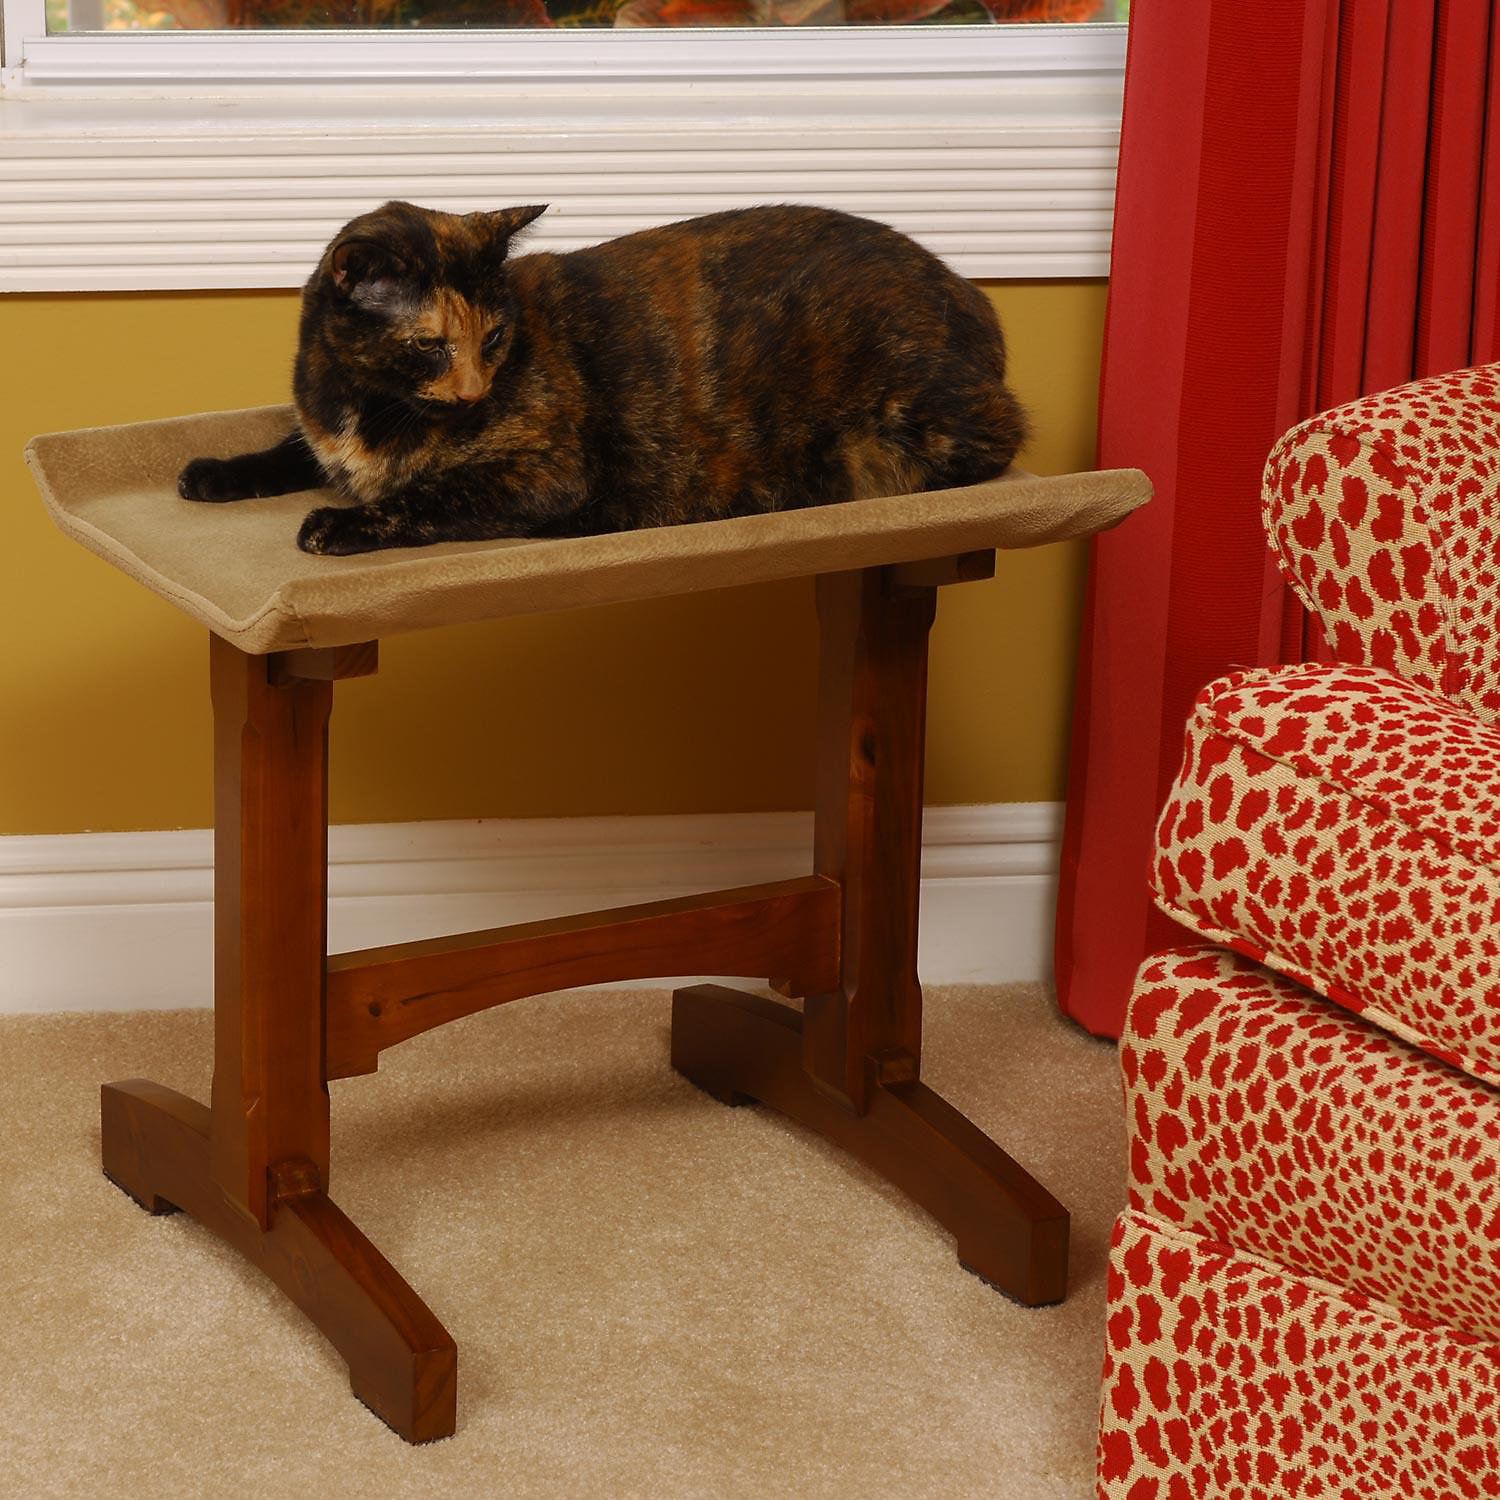 Mr. Herzhers Single Seat Feline Furniture In Brown